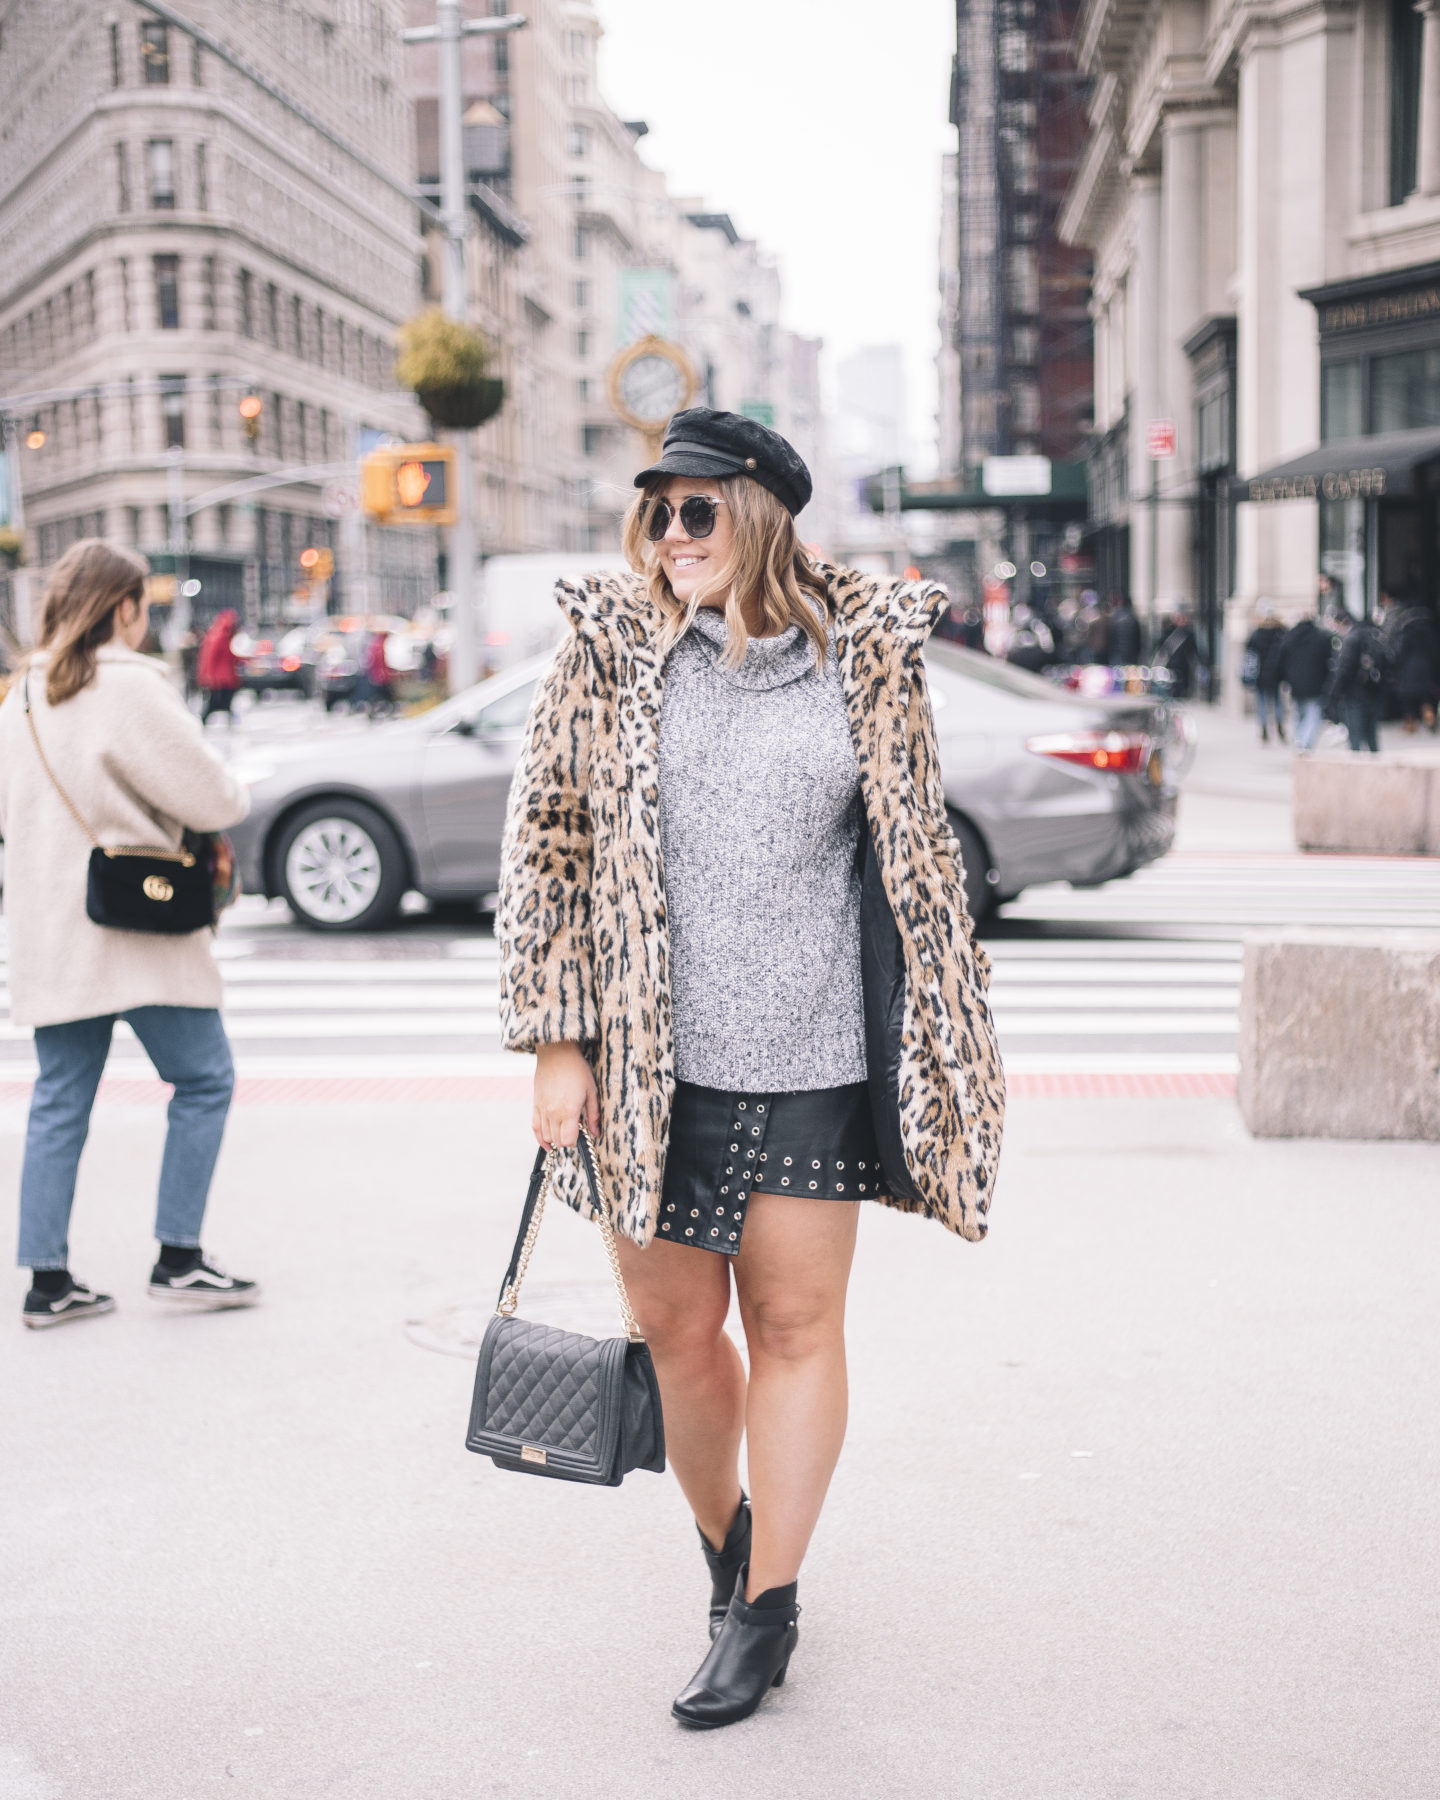 Monochrome Outfit + A Pop Of Leopard at NYFW